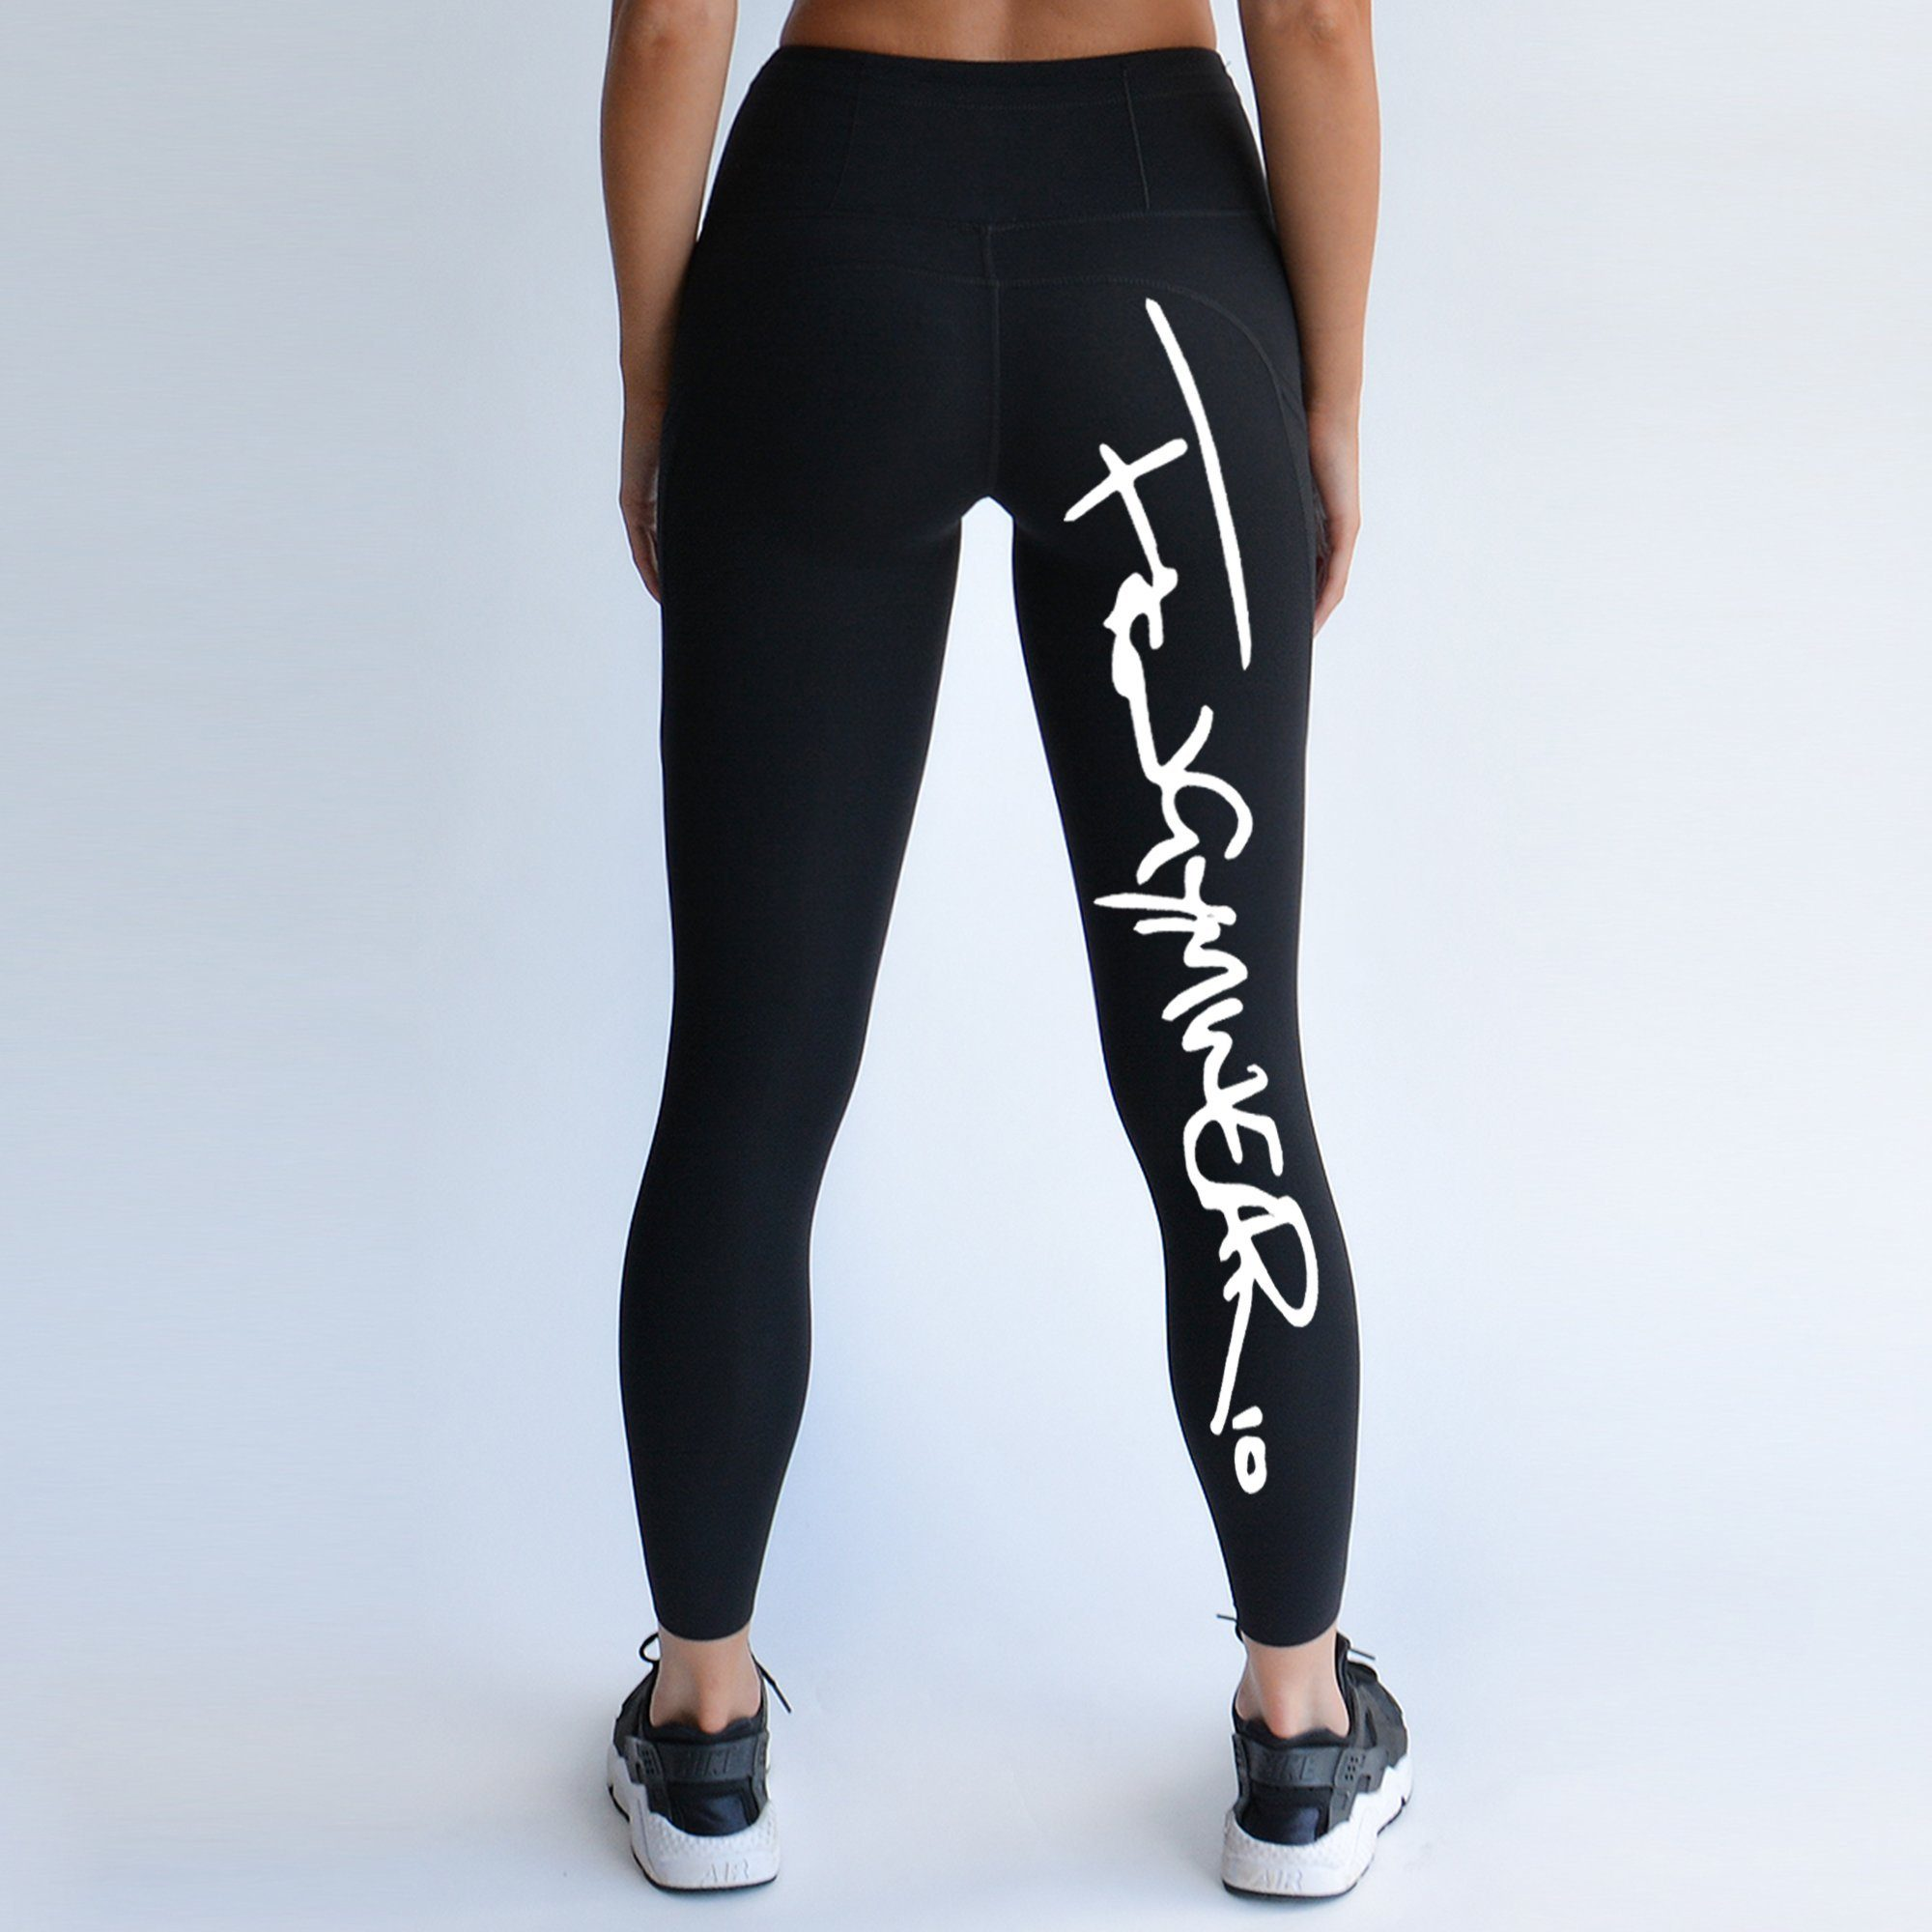 FKN Gym Wear A2G Signature Leggings - Black